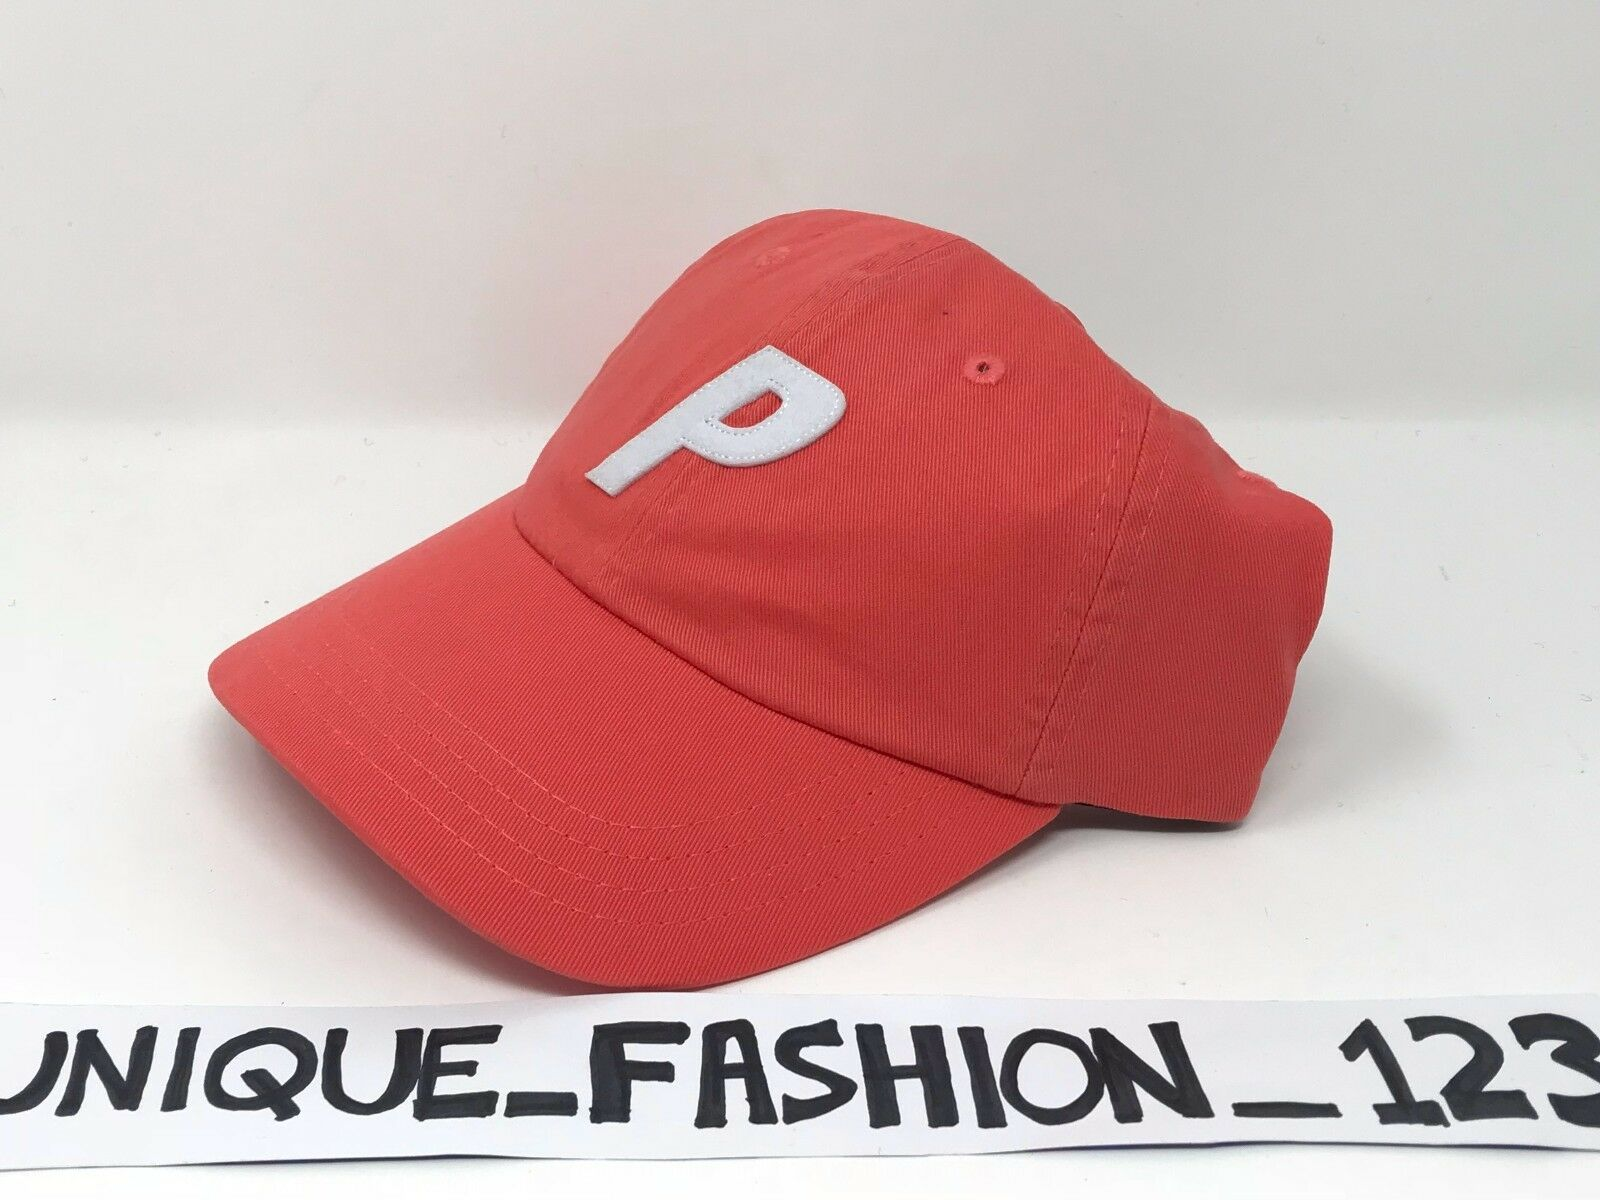 PALACE SKATEBOARDS FW16 6 PANEL P SALMON CAMP HAT CAP CAYENNE SALMON P RED CURVED PEAK a3b11b